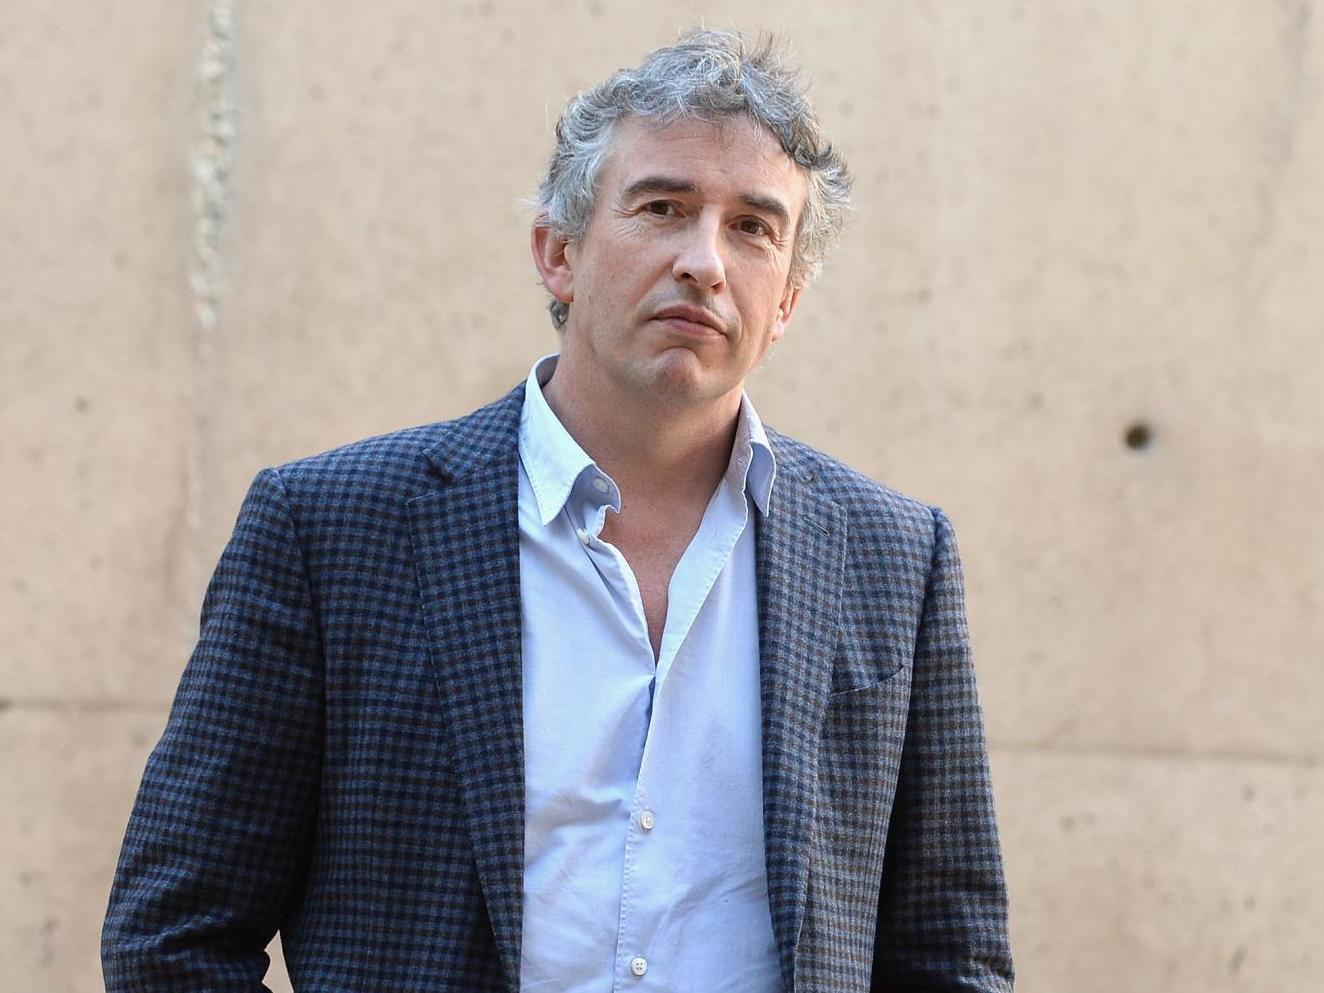 Steve Coogan says super-rich 'spin environmental issues' to look good